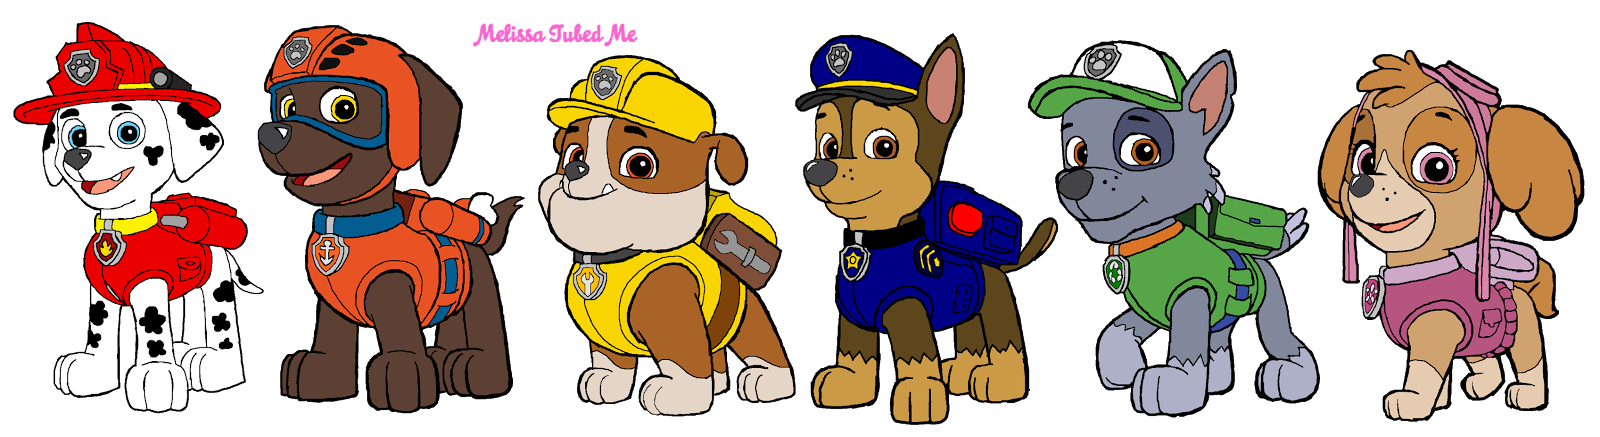 banner library stock Badges characters. Car clipart paw patrol.